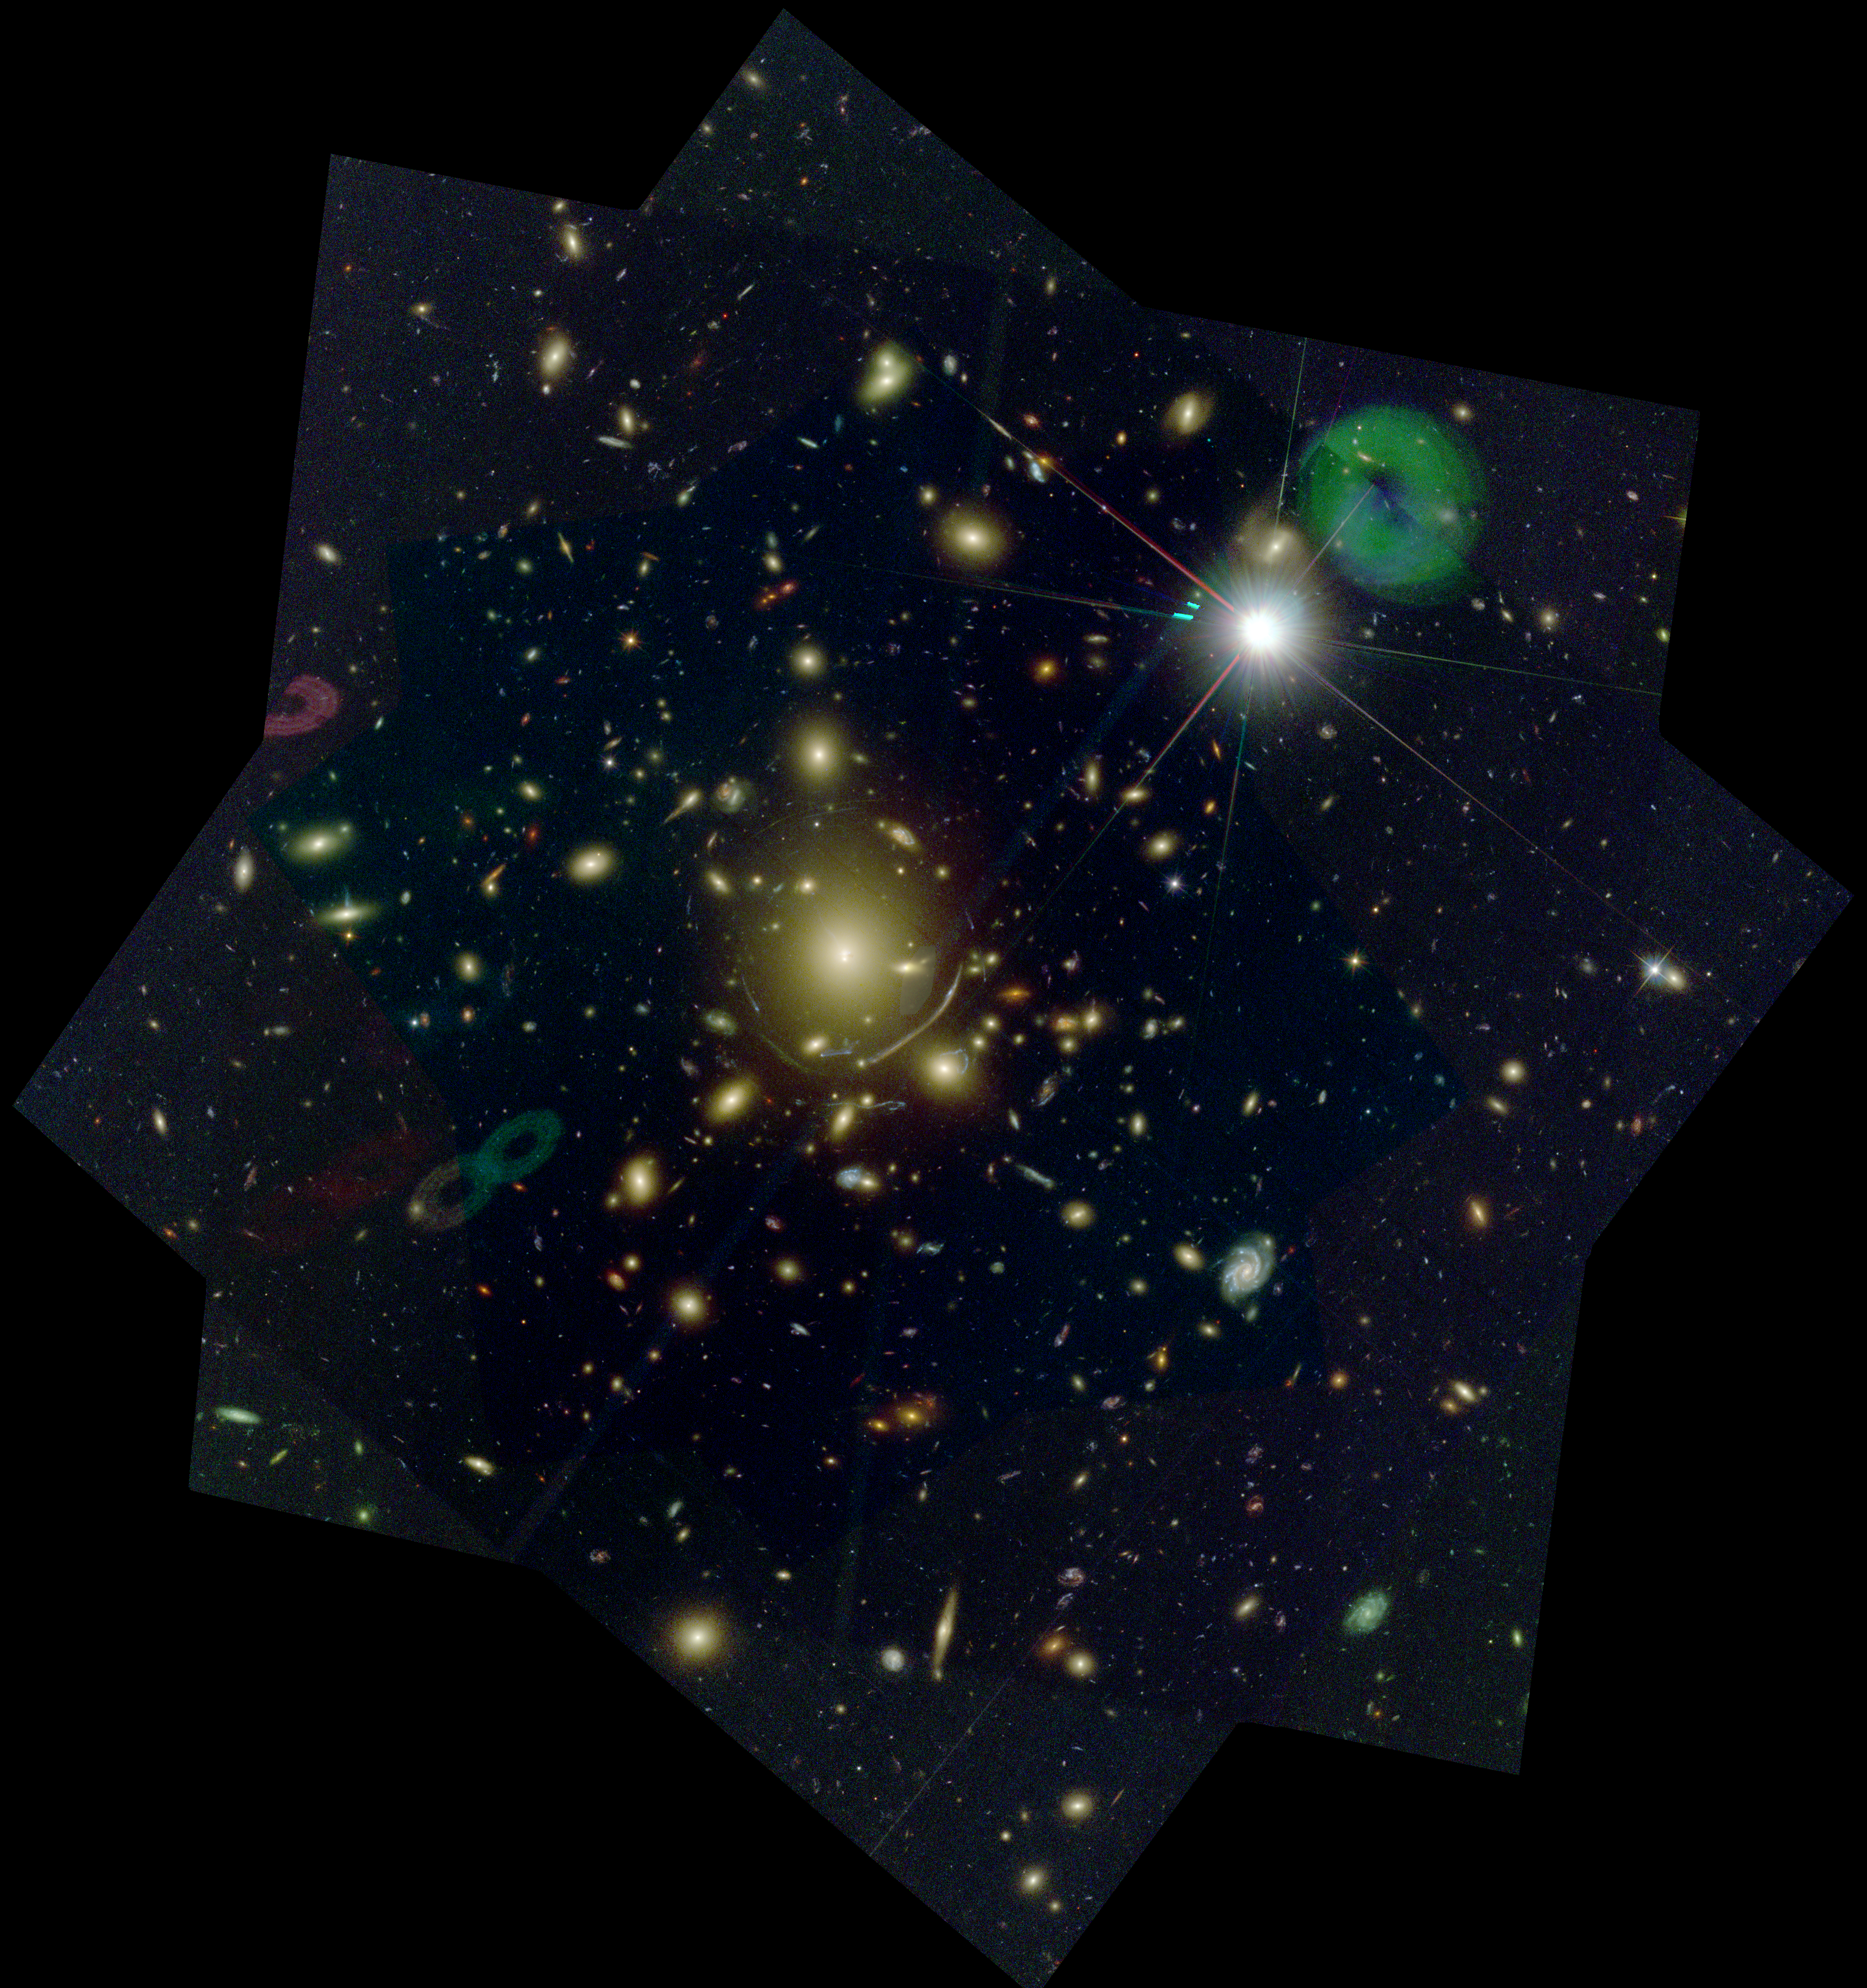 cluster lensing and supernova survey with hubble clash